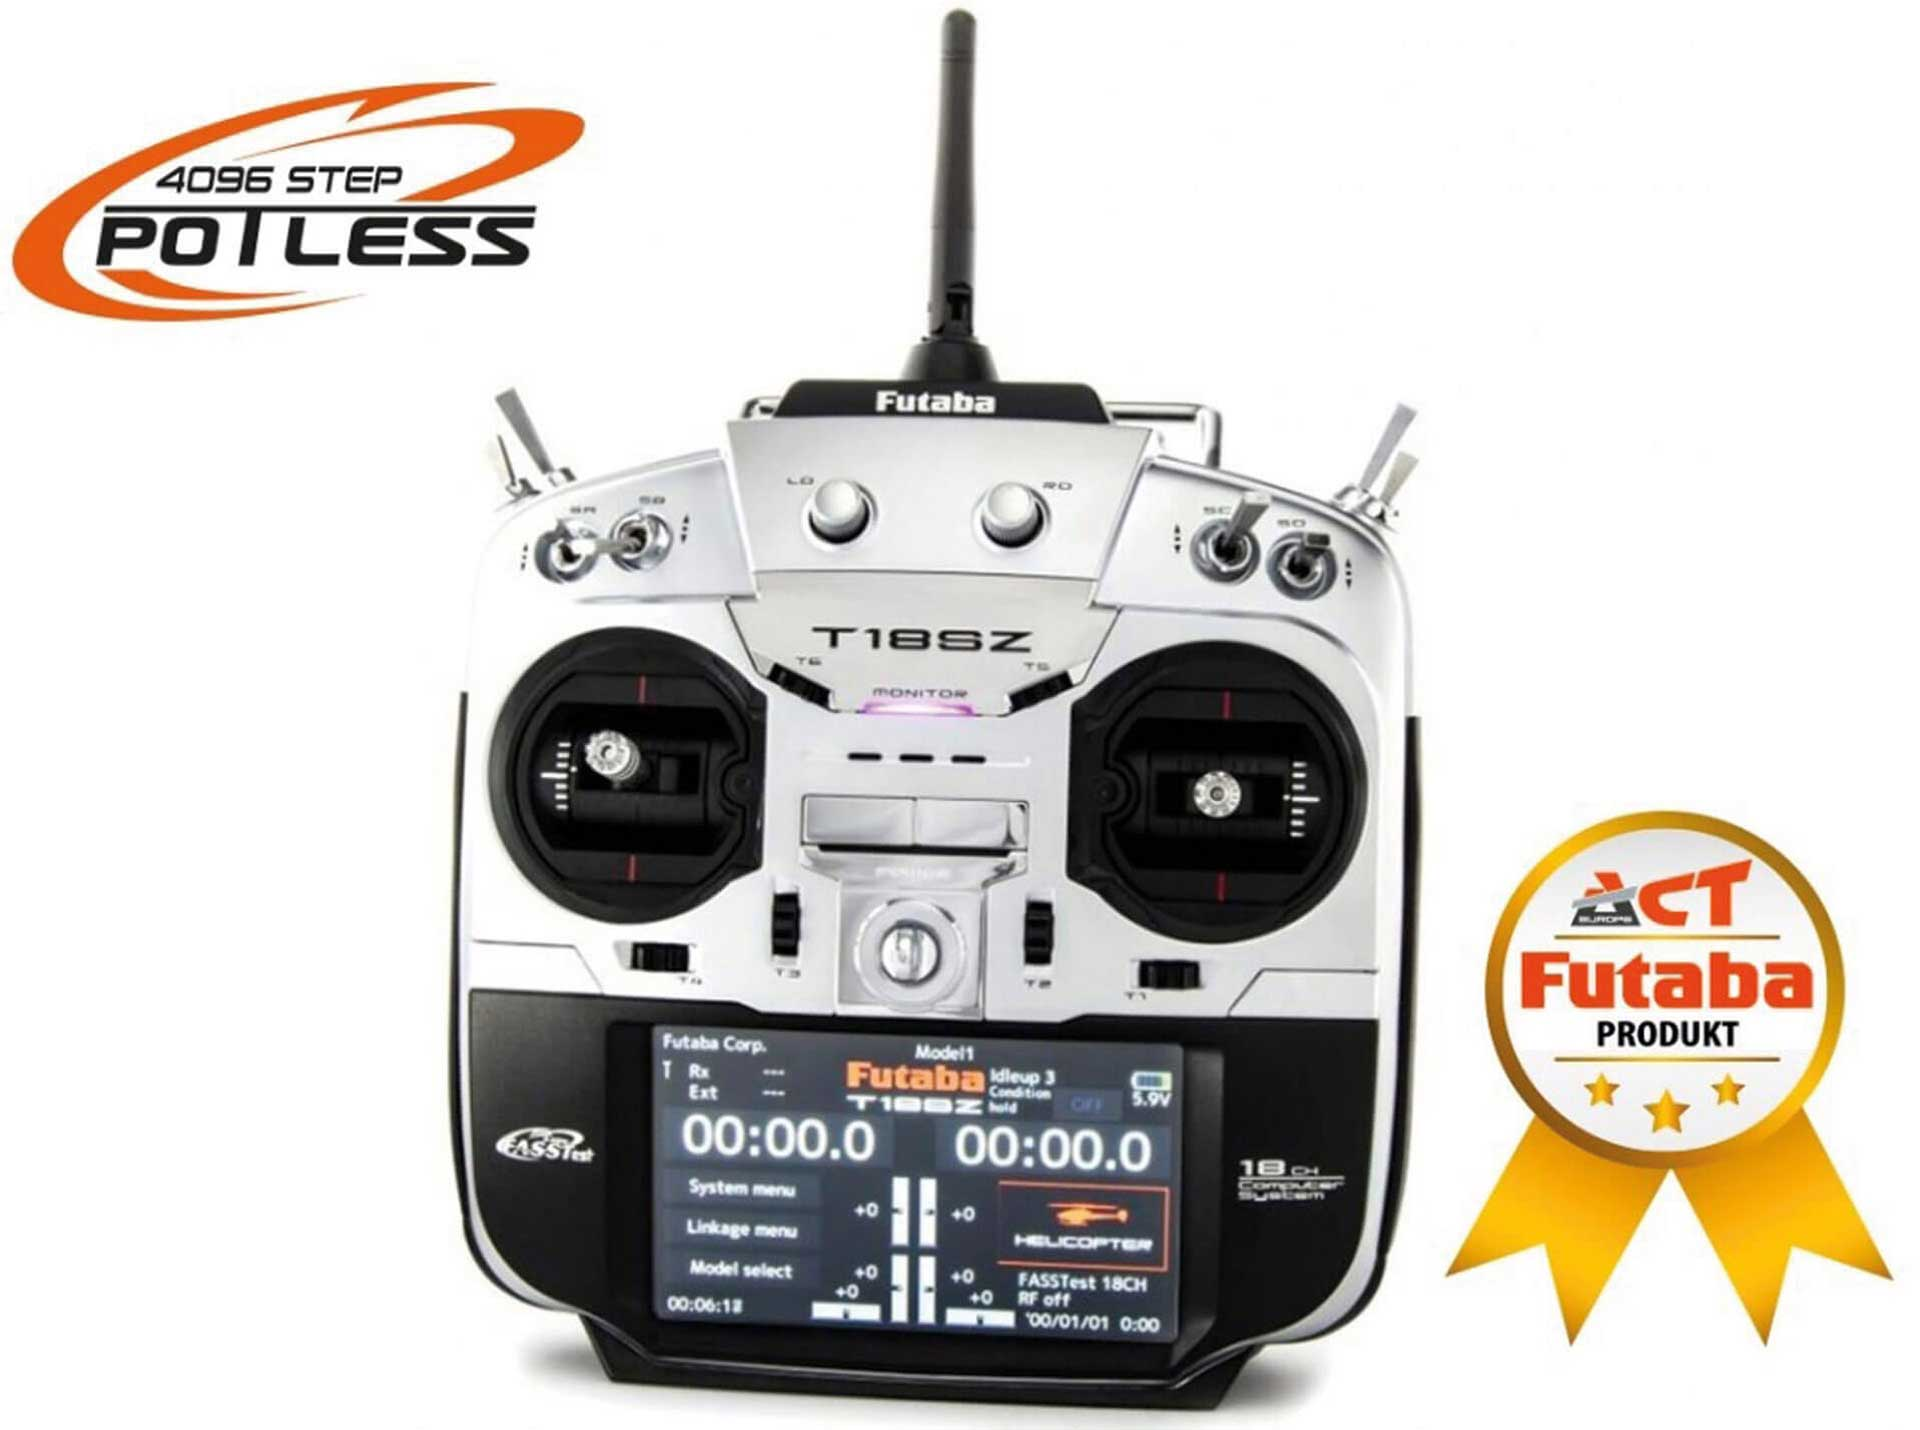 FUTABA T18SZ DRUM TEST POTLESS MODE 1 WITH R7014SB 18 CHANNEL REMOTE CONTROL